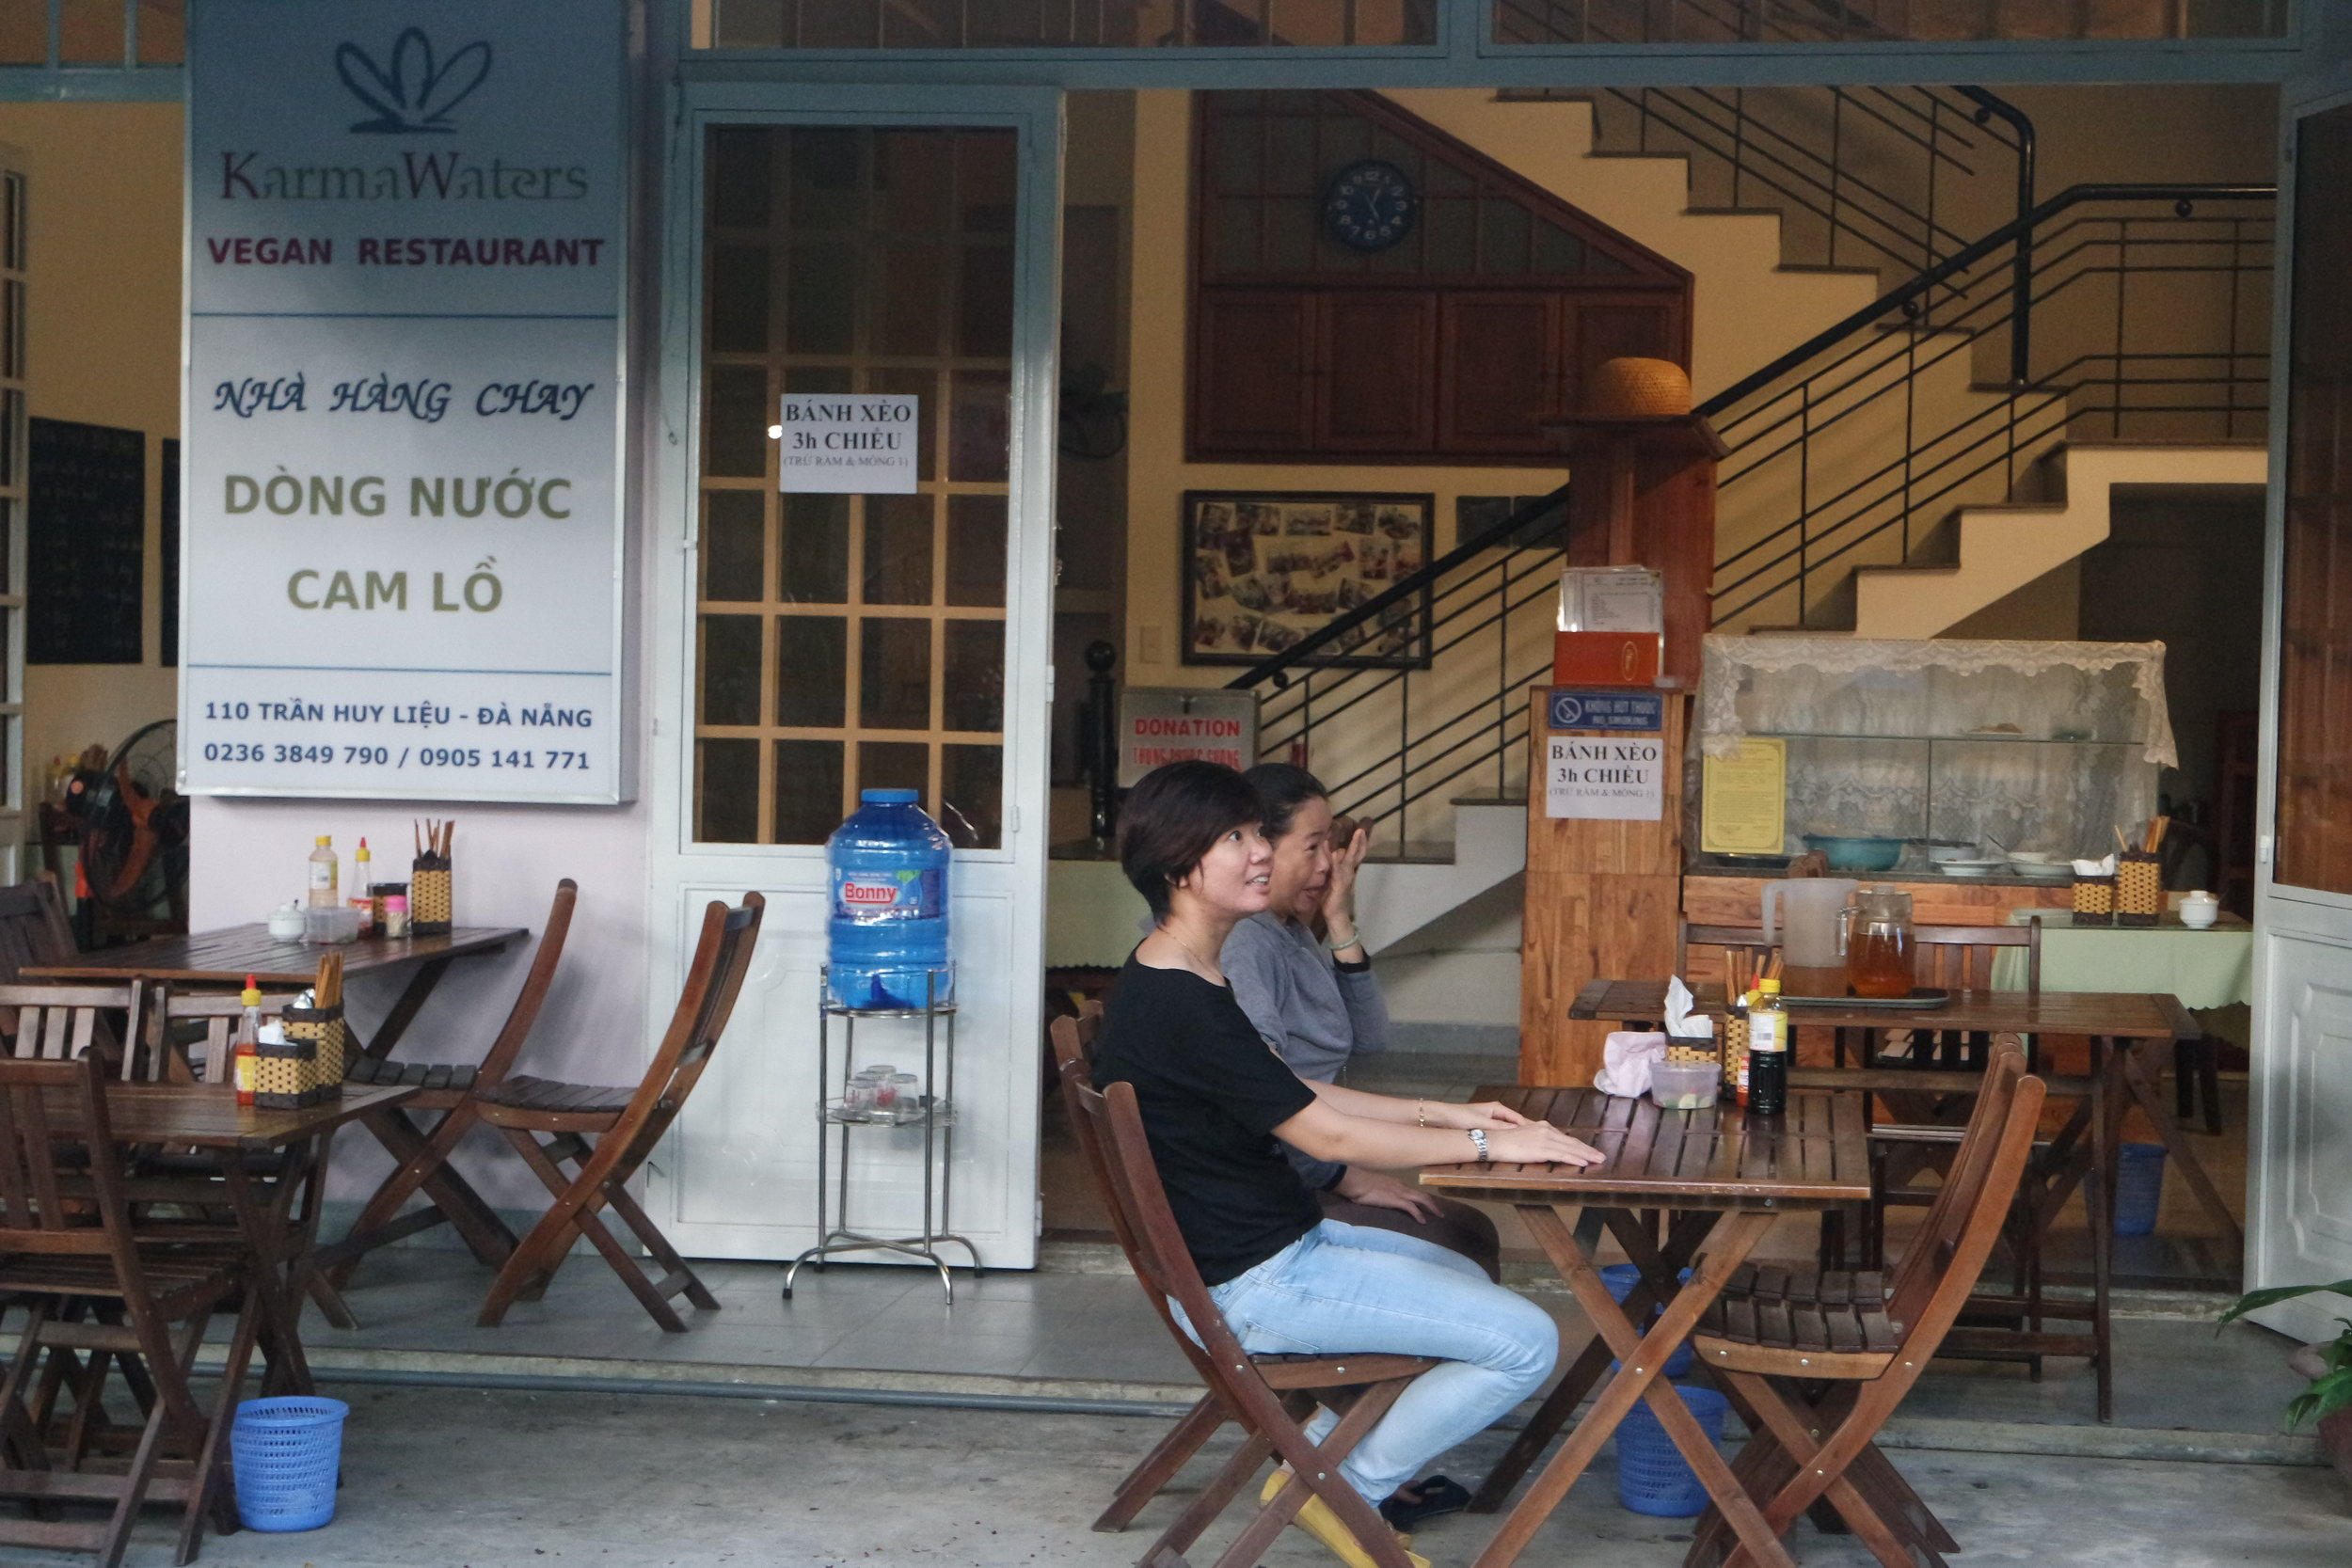 Karma Waters restaurant in Danang is the centre of the charity work.